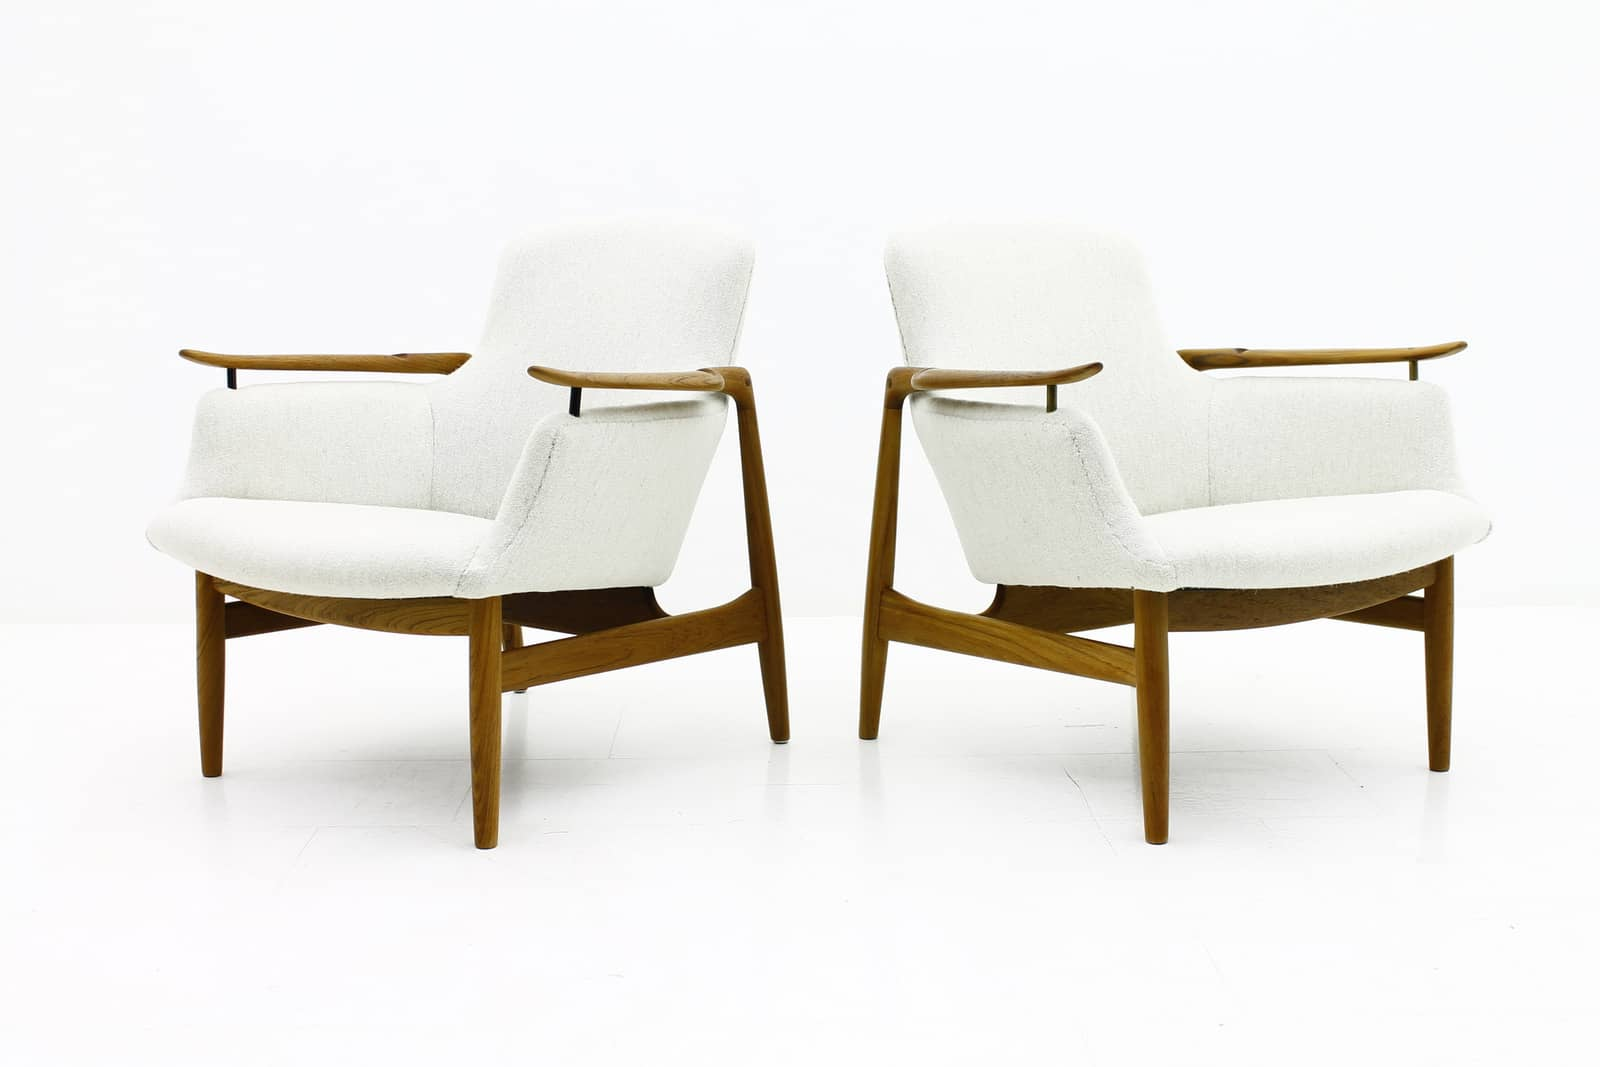 Finn Juhl NV 53, niels vodder, denmark, lounge chairs